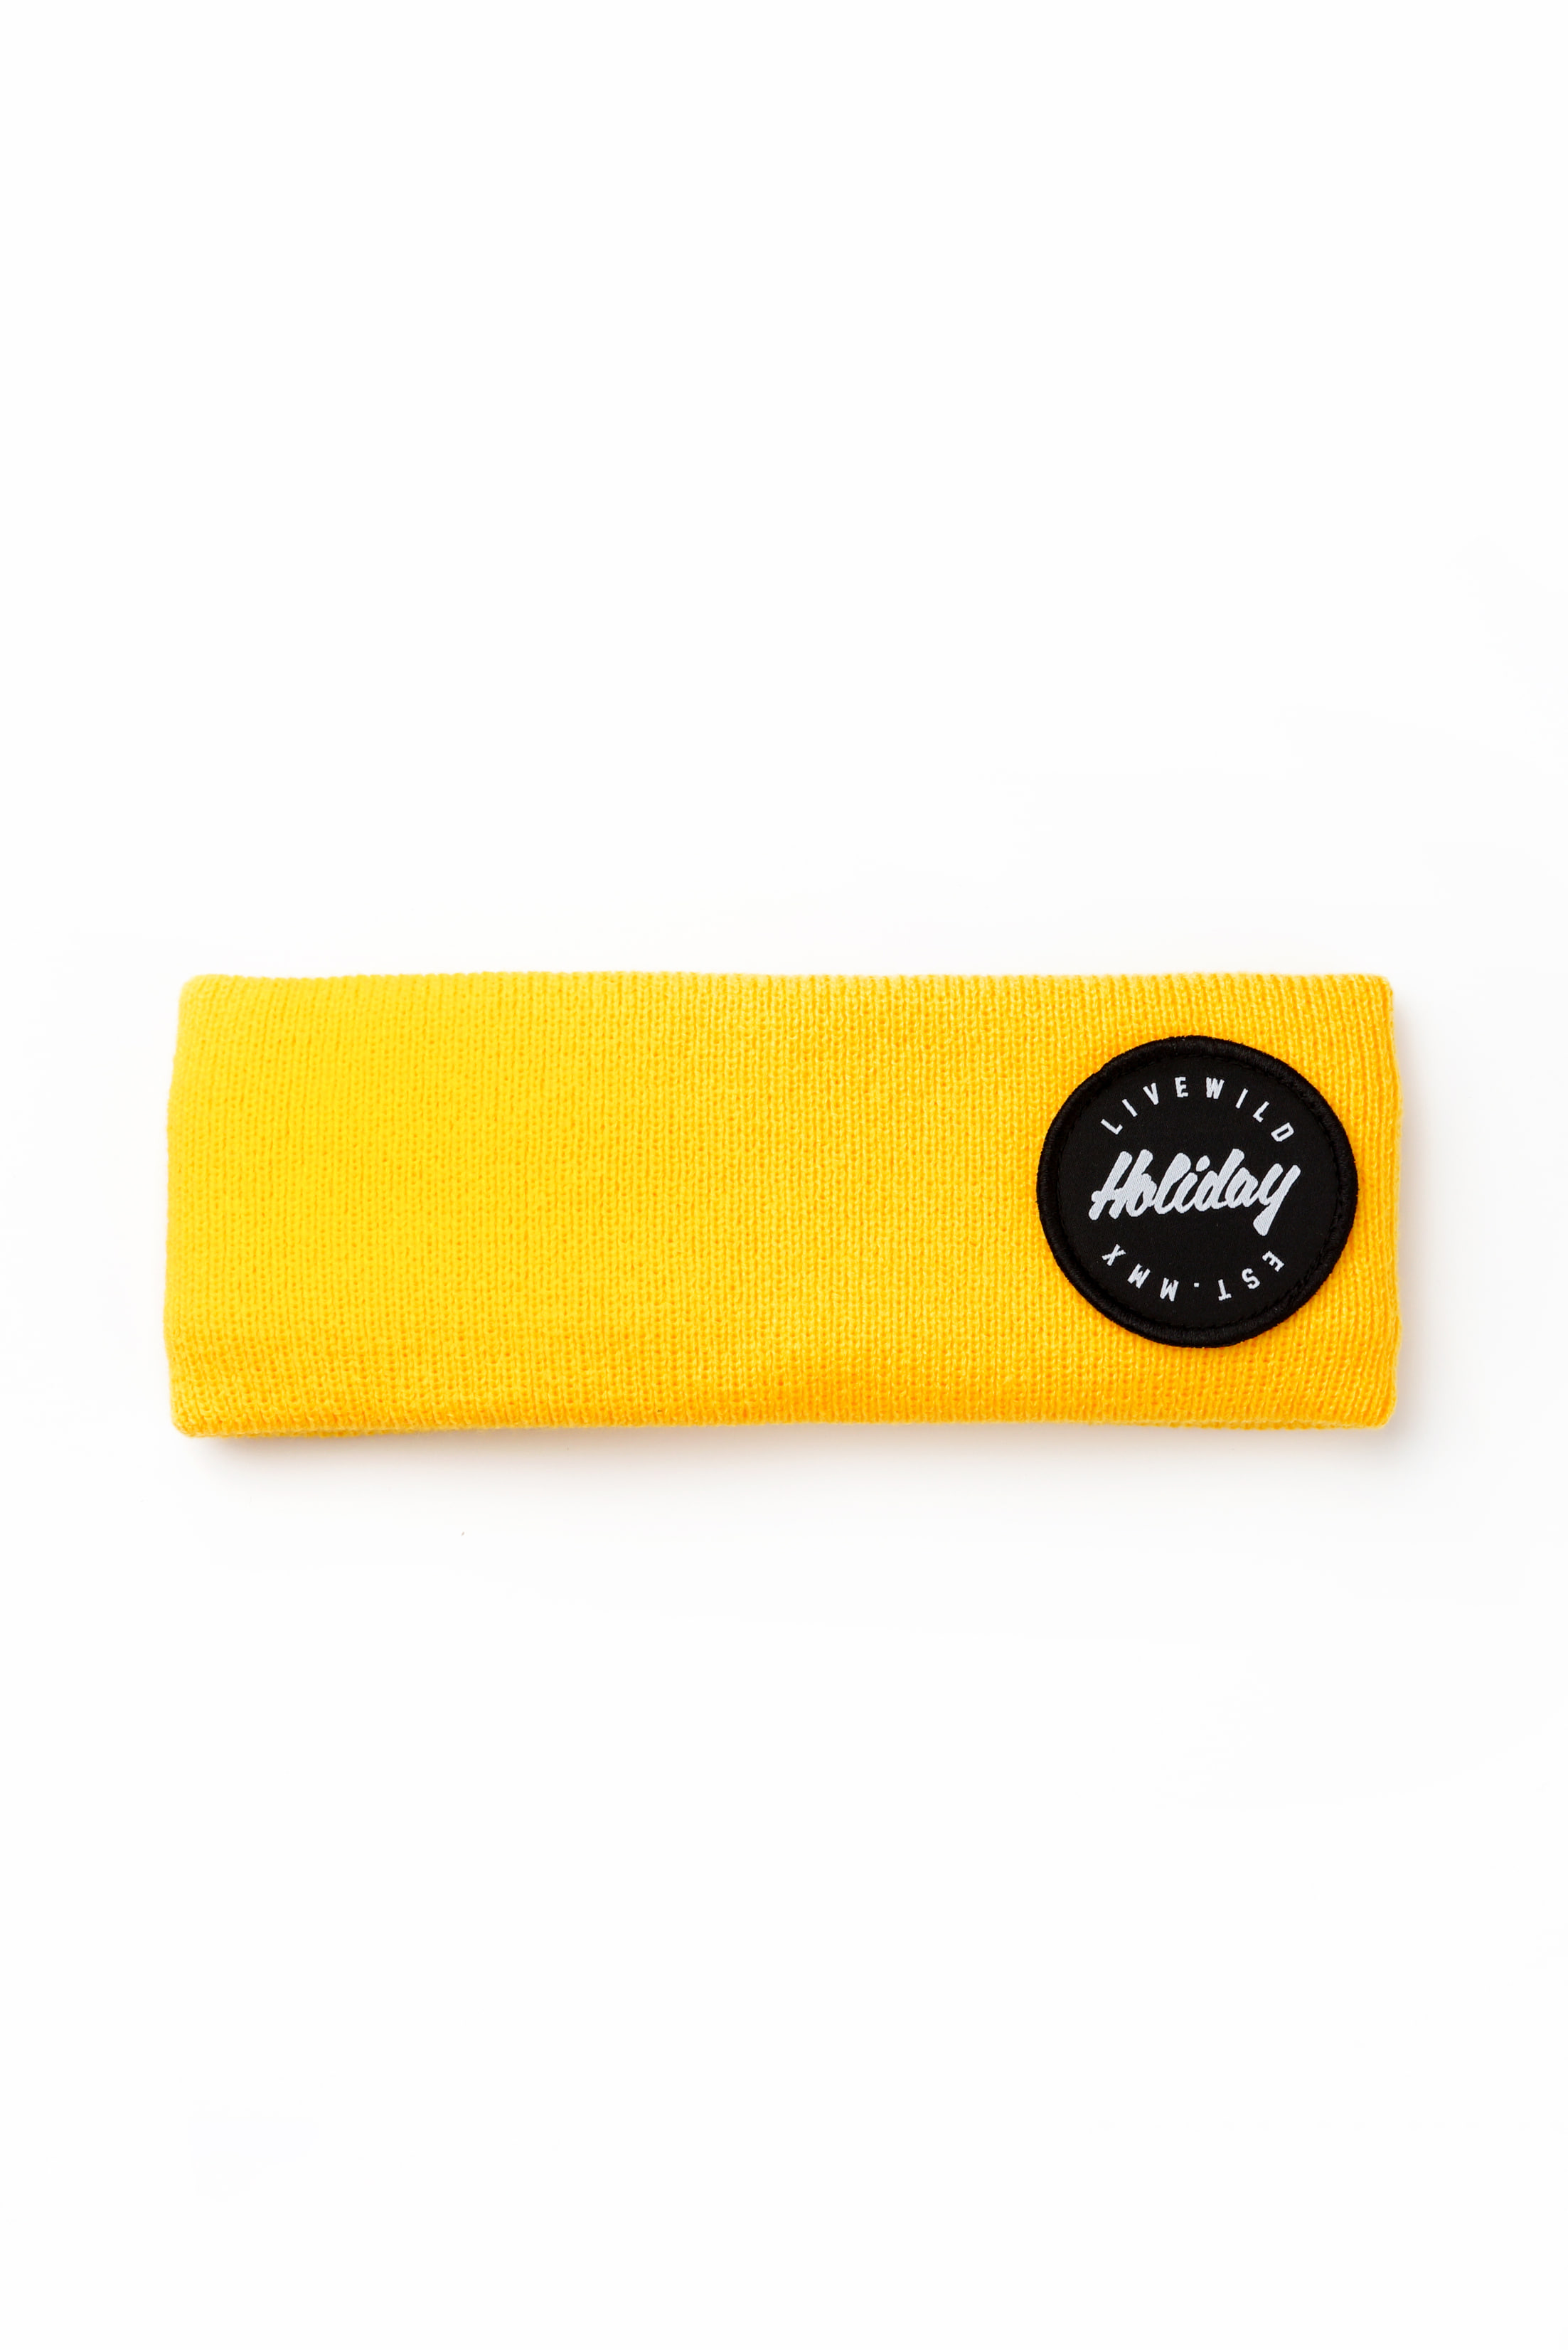 CREW hairband - yellowHOLIDAY OUTERWEAR